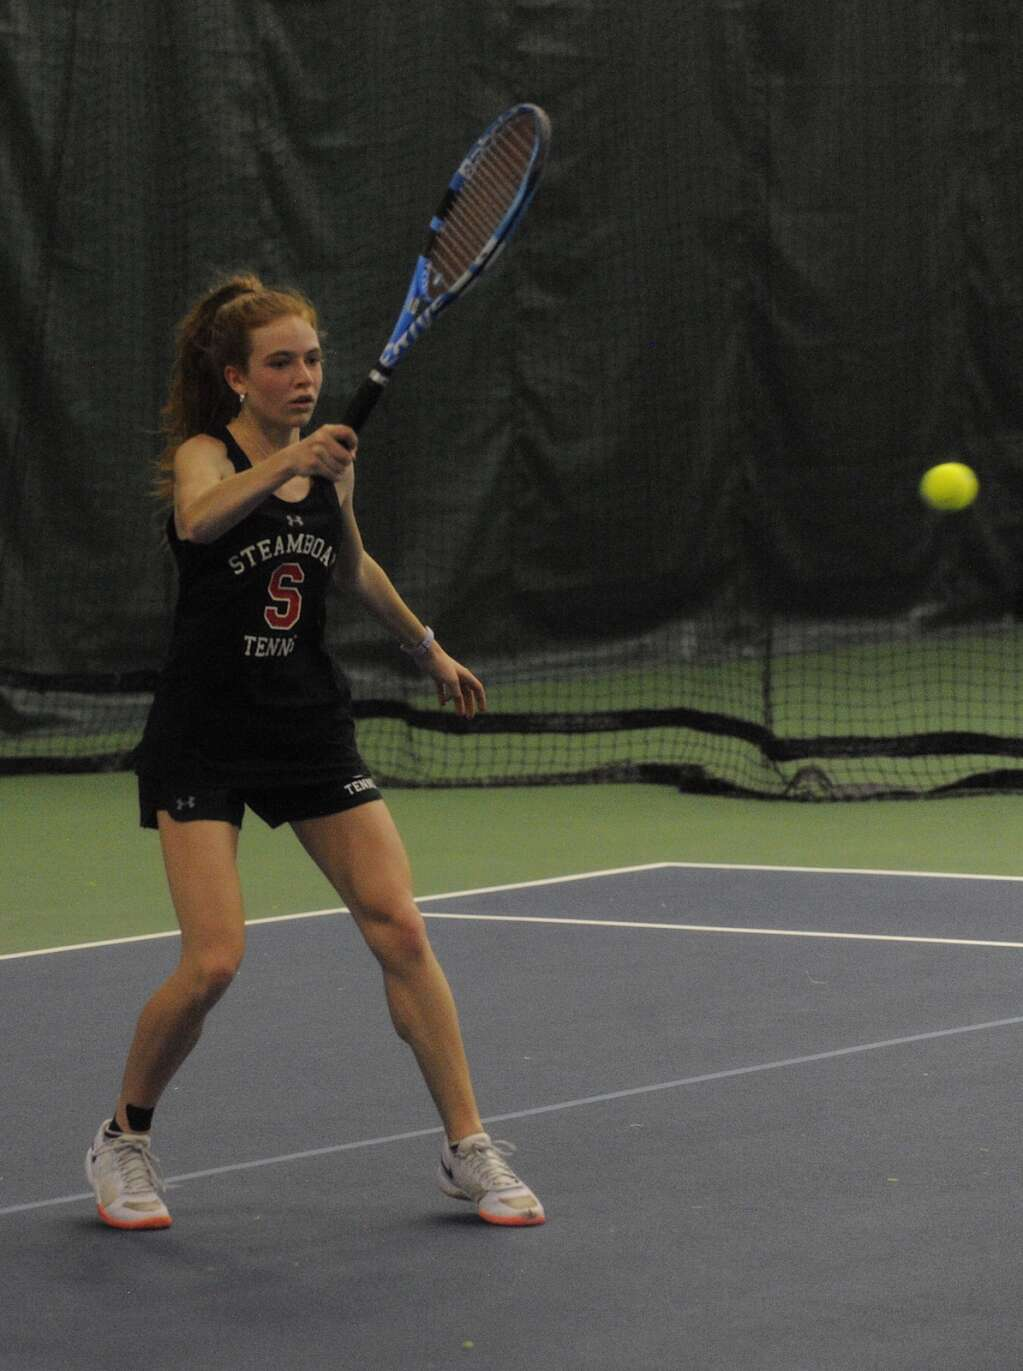 Steamboat Springs freshman tennis player Kelsey Norland focuses on the ball in a match against Basalt at home on Saturday. (Photo by Shelby Reardon)